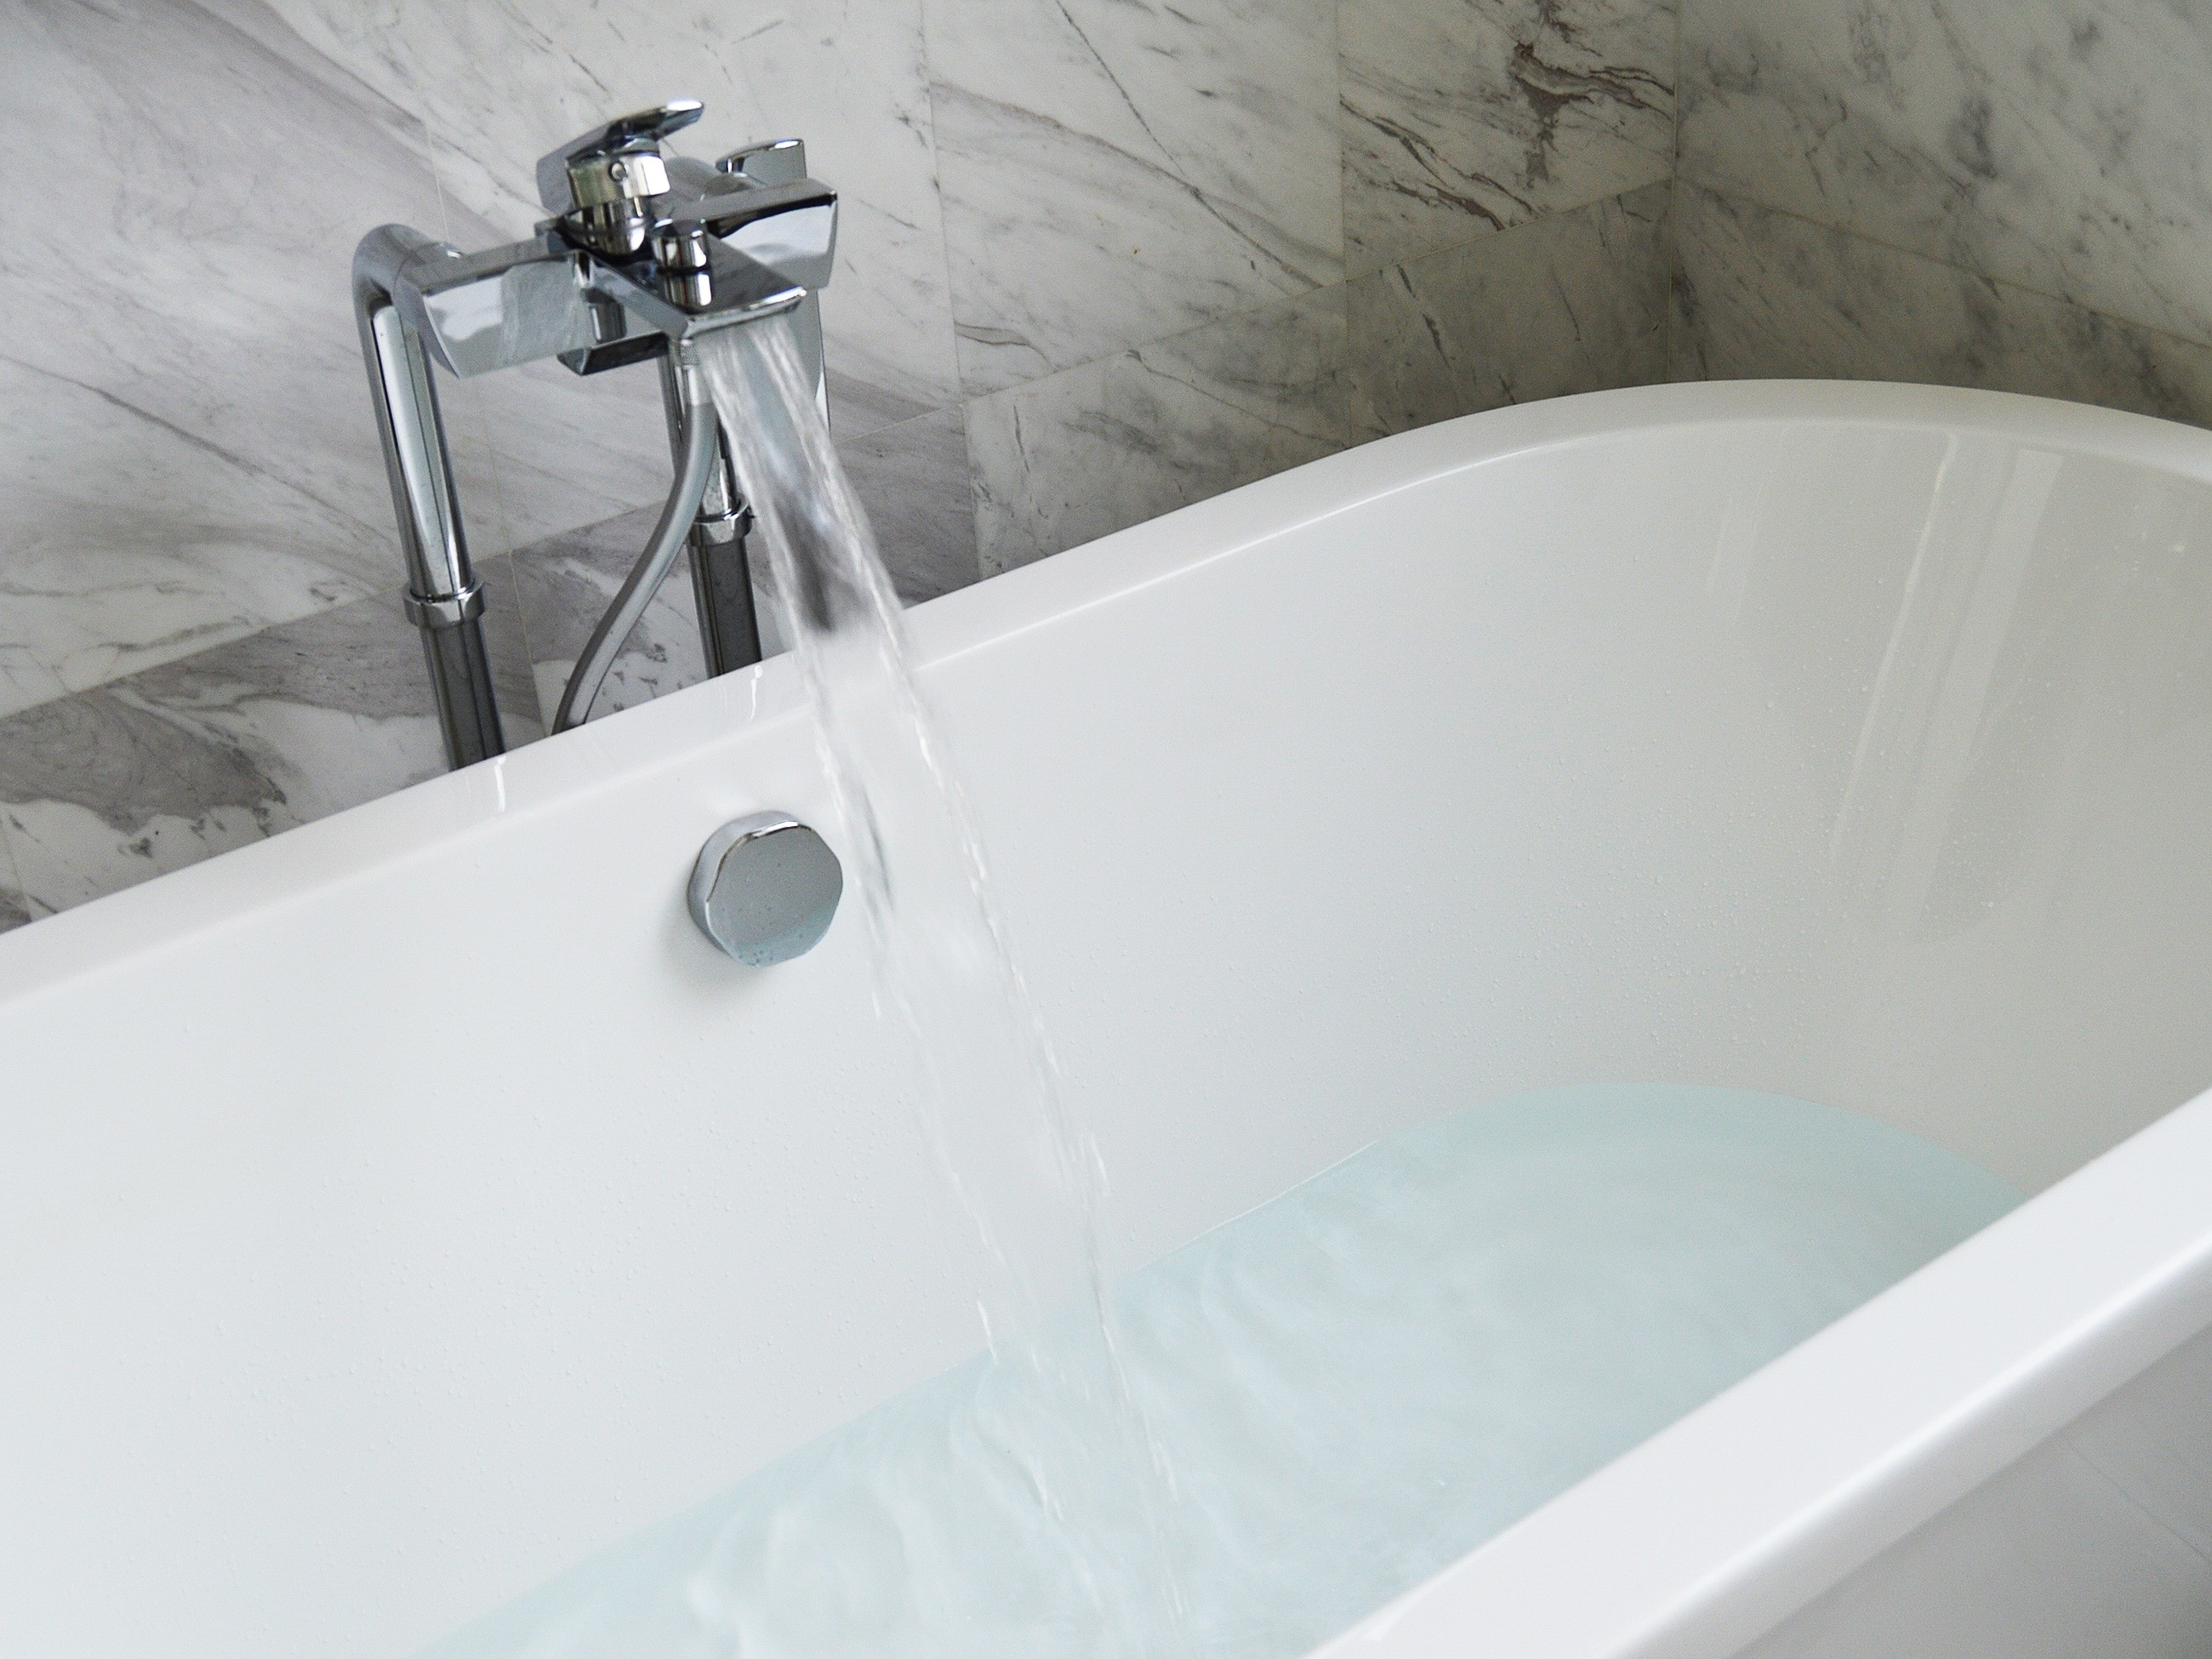 white porcelain oval bath tub and stainless steel faucet